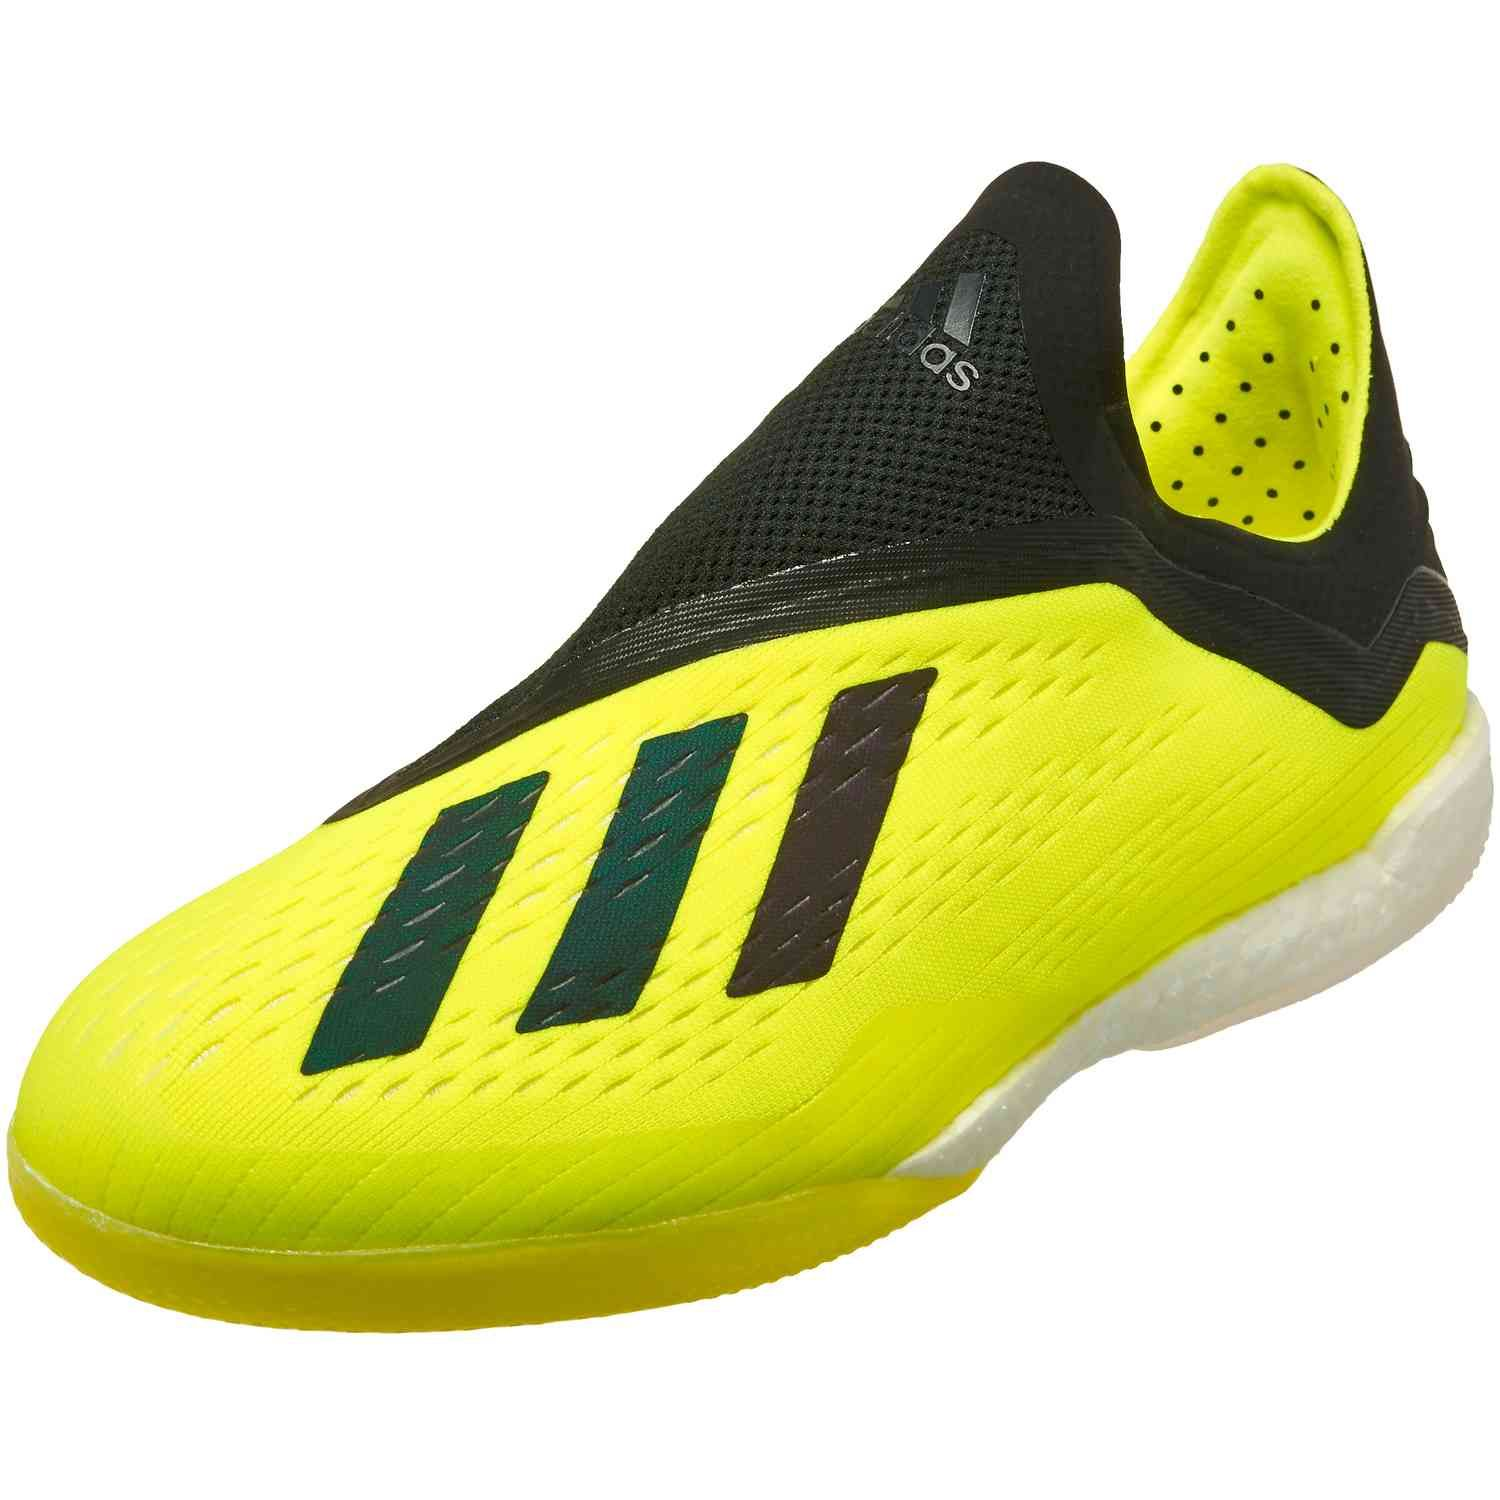 promo code 0f6f7 47f0e Team Mode pack adidas X Tango 18 indoor soccer shoes. Get them from  www.soccerpro.com